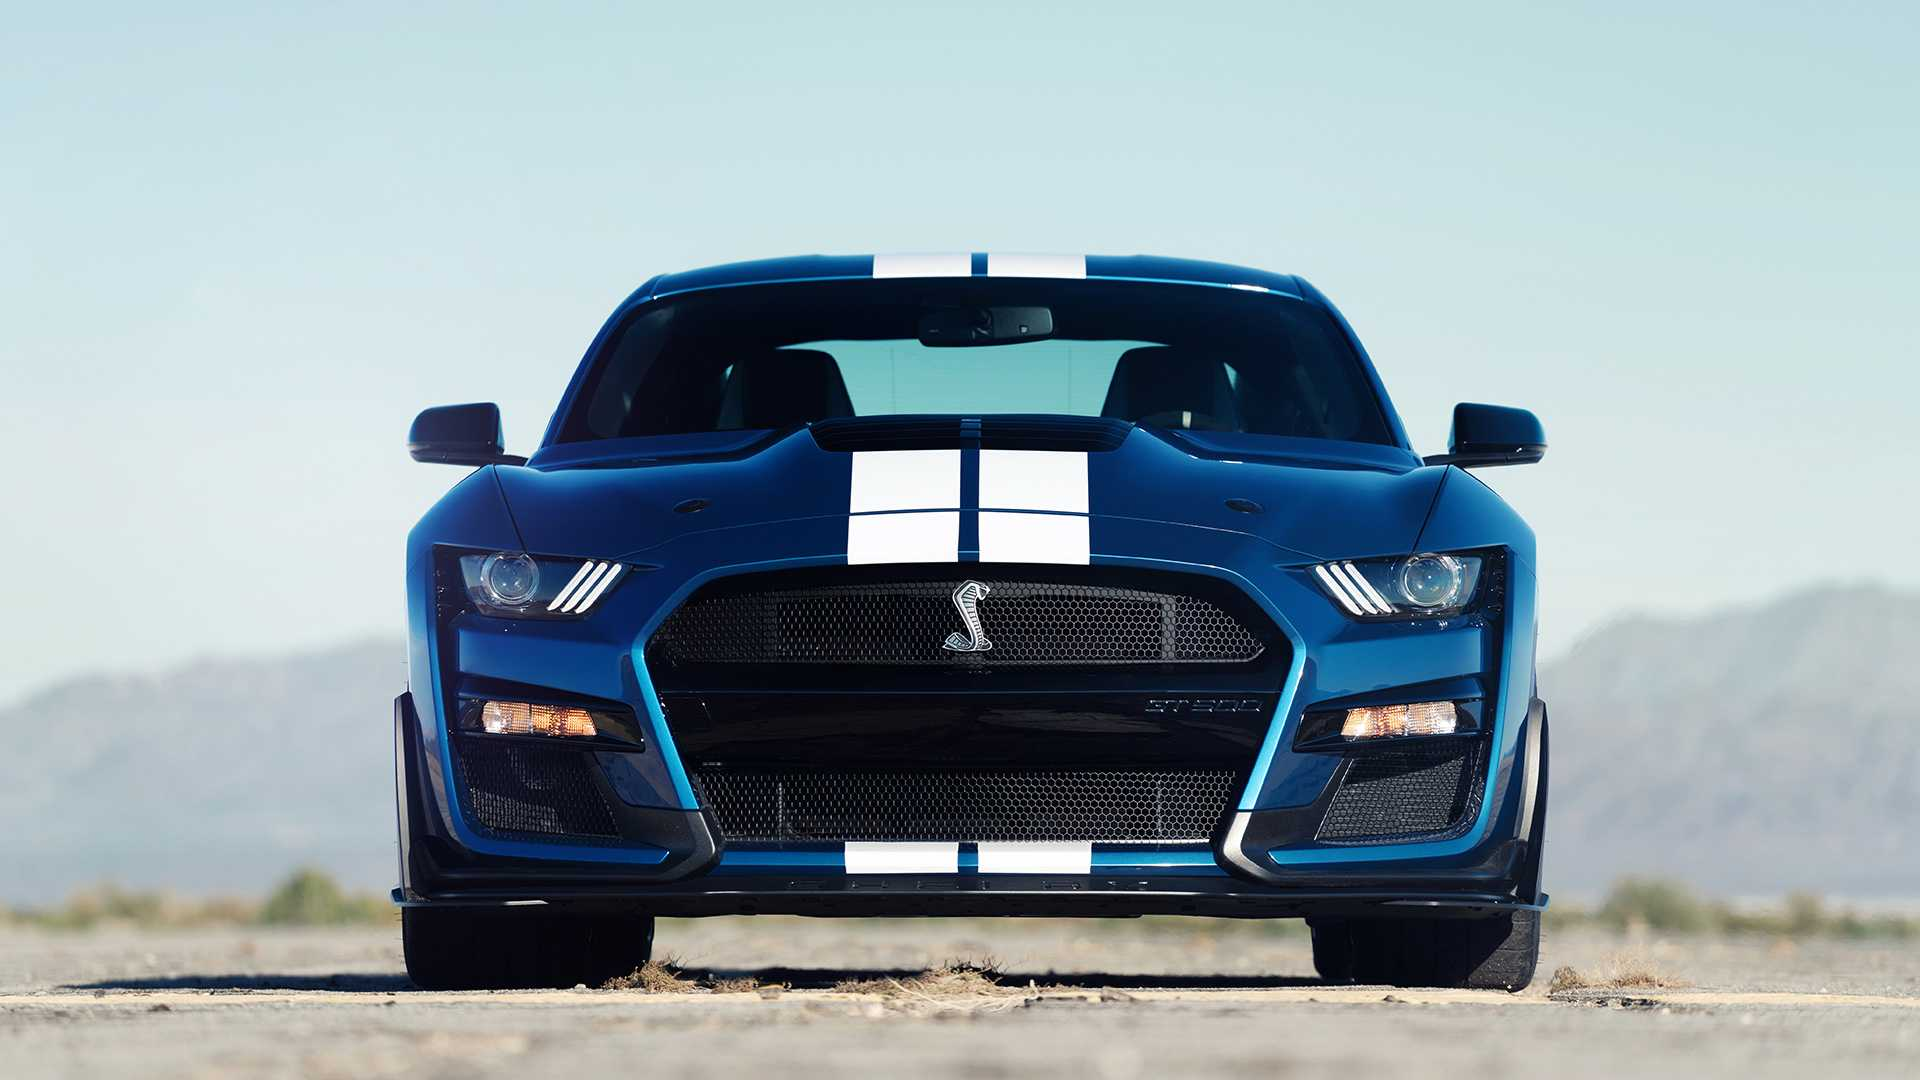 2020-ford-shelby-gt500-5.jpg | Mustang Mach-E Forum